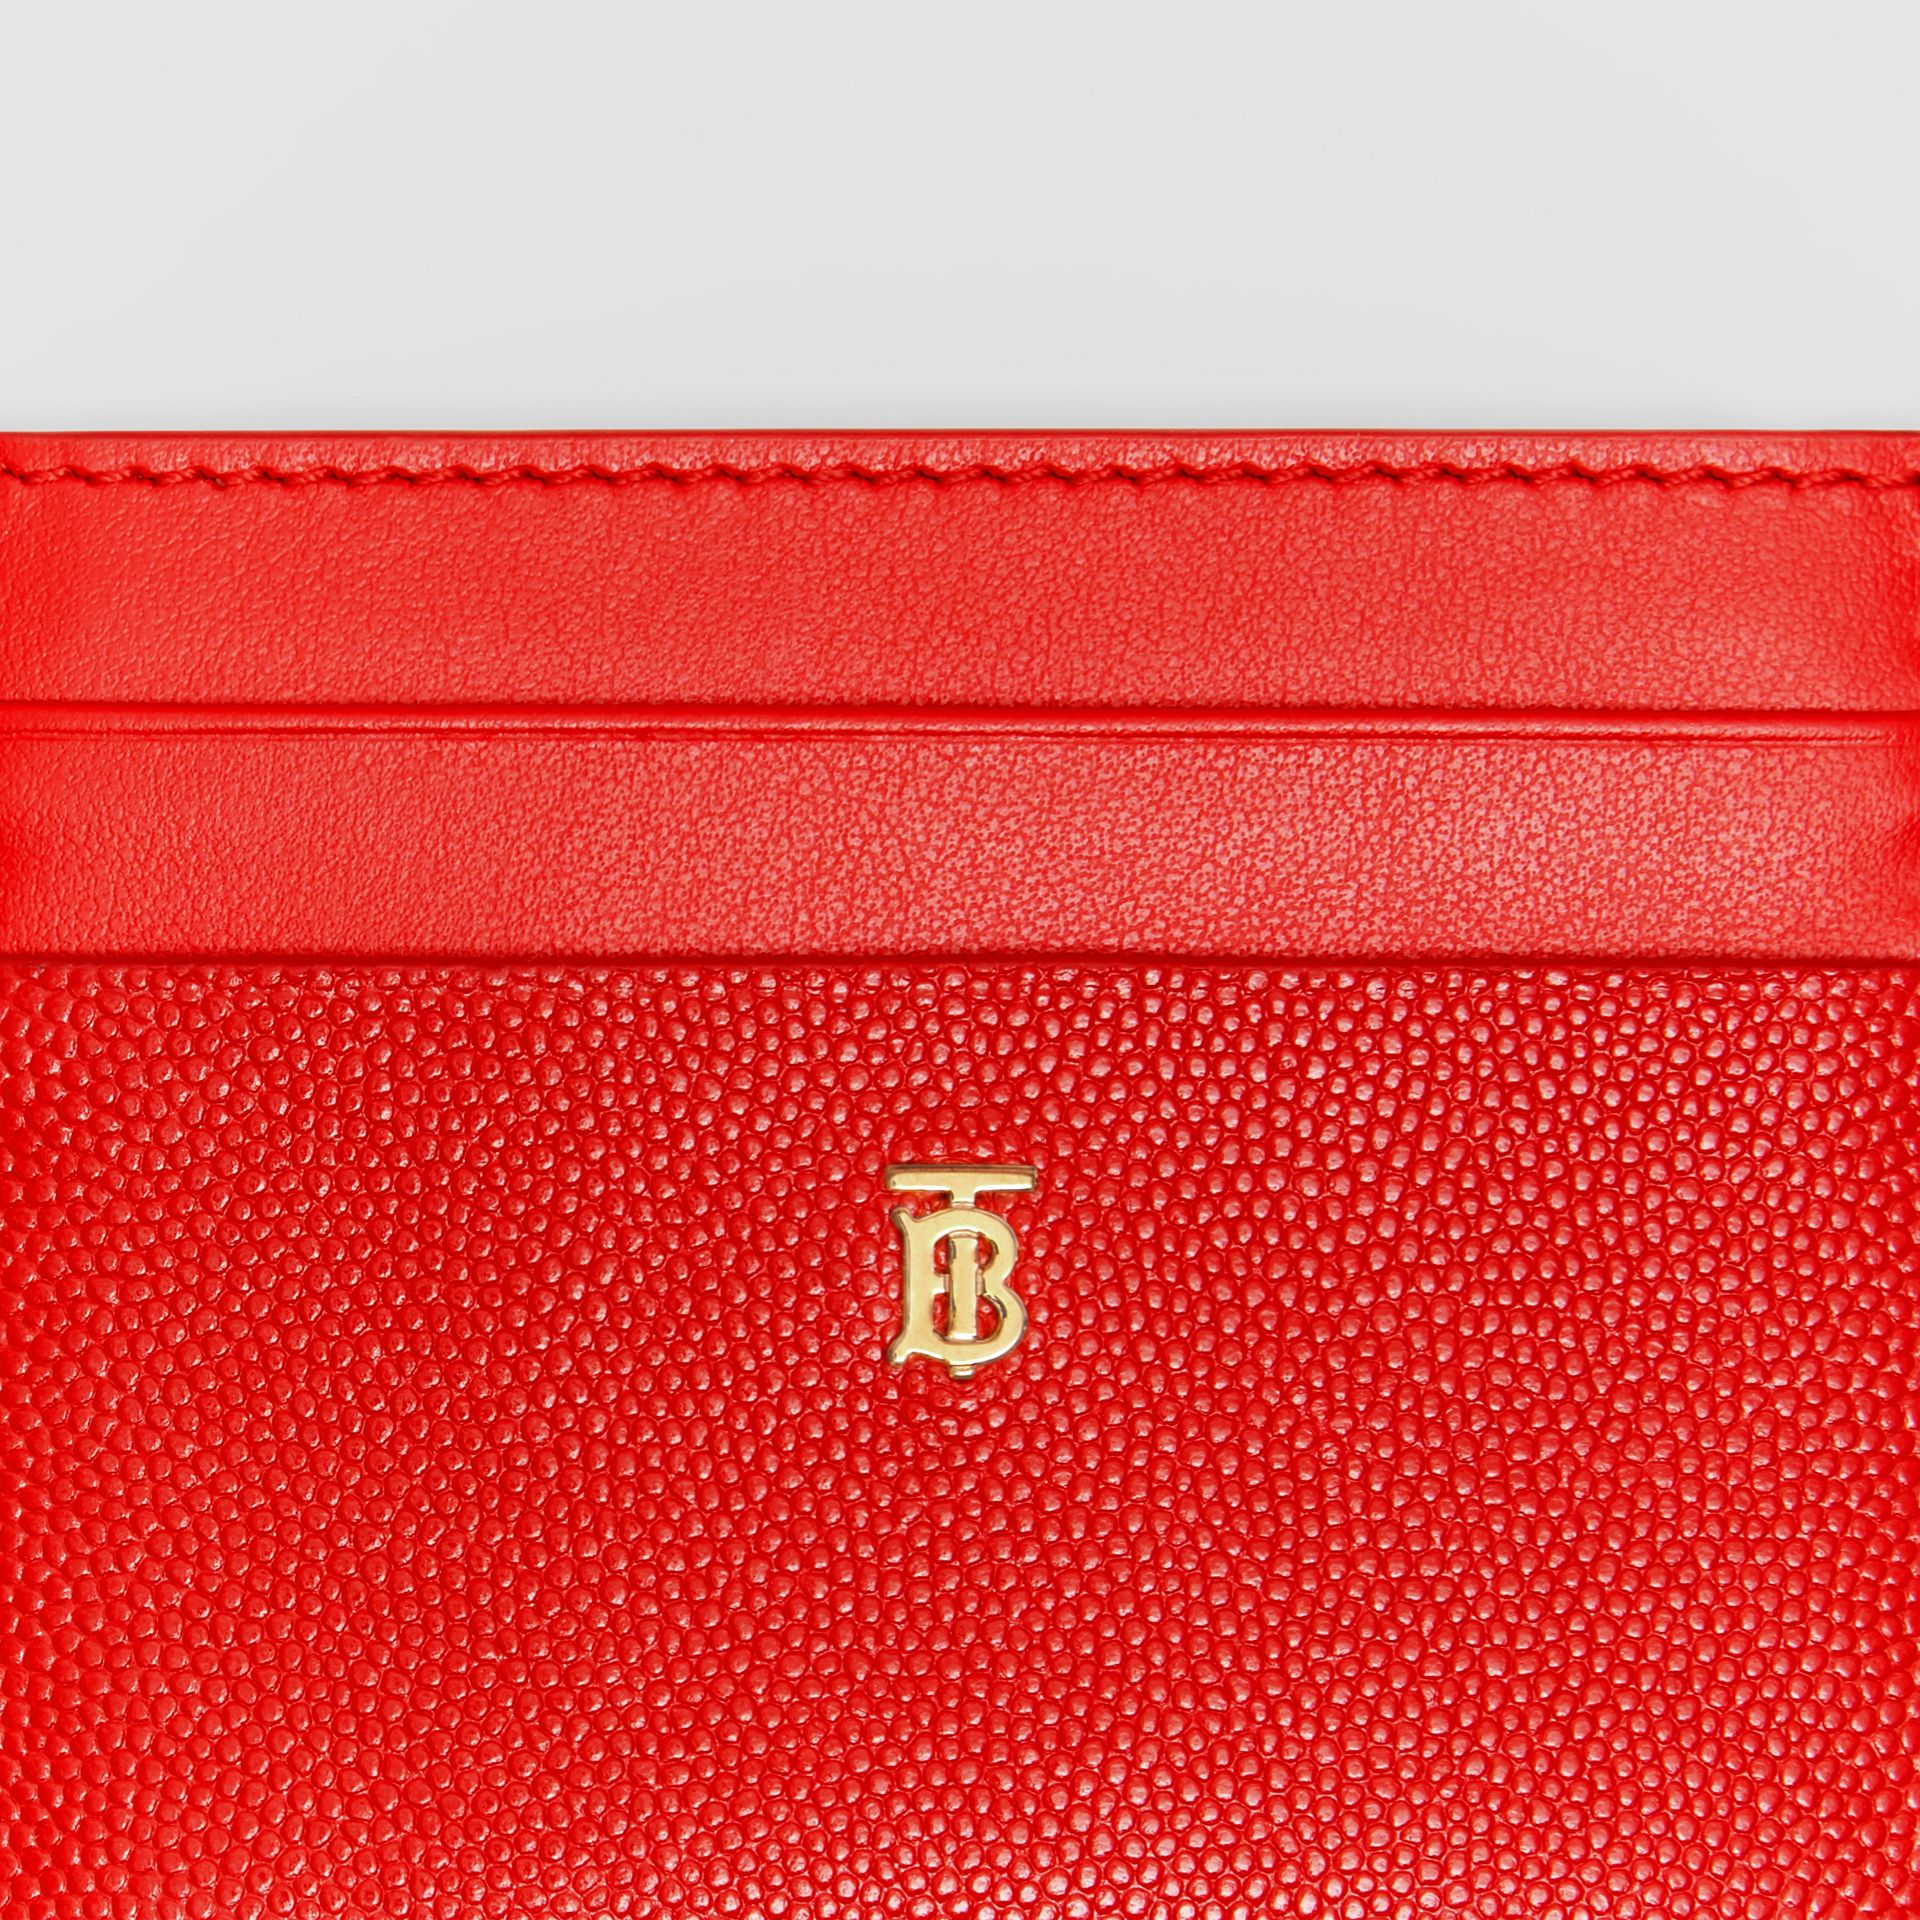 Monogram Motif Leather Card Case in Bright Red - Women | Burberry Australia - gallery image 1